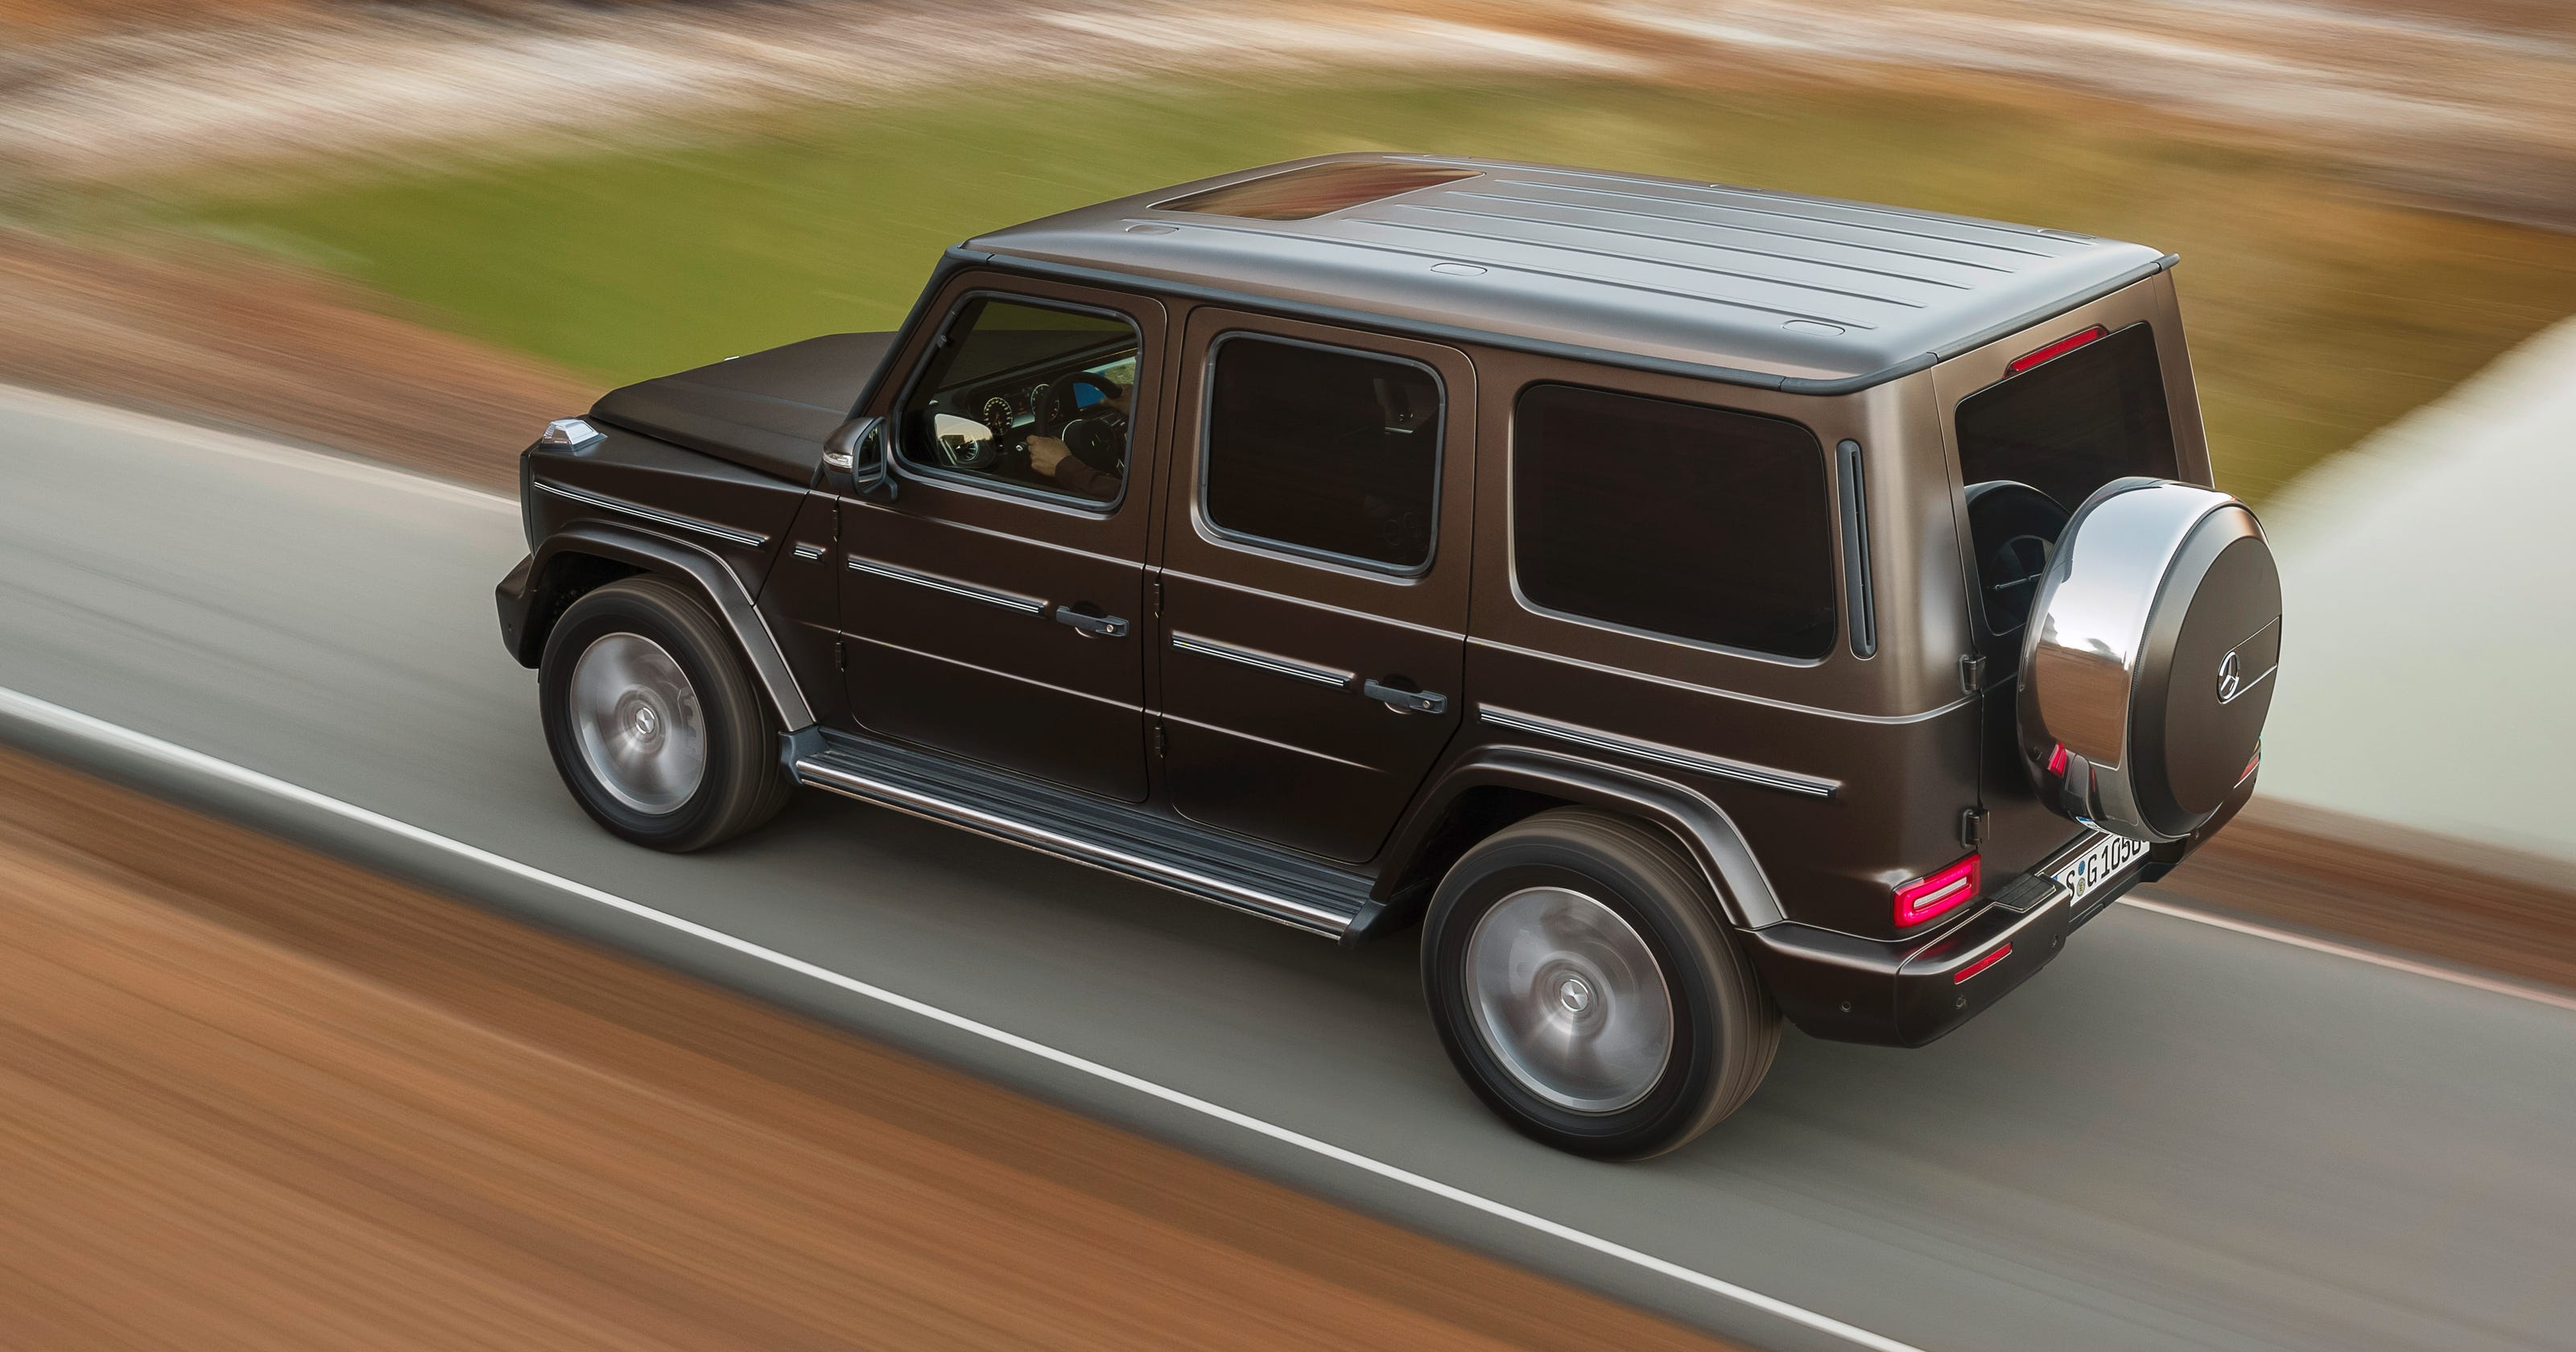 Mercedes G-Class off-road SUV comes to Detroit Auto Show